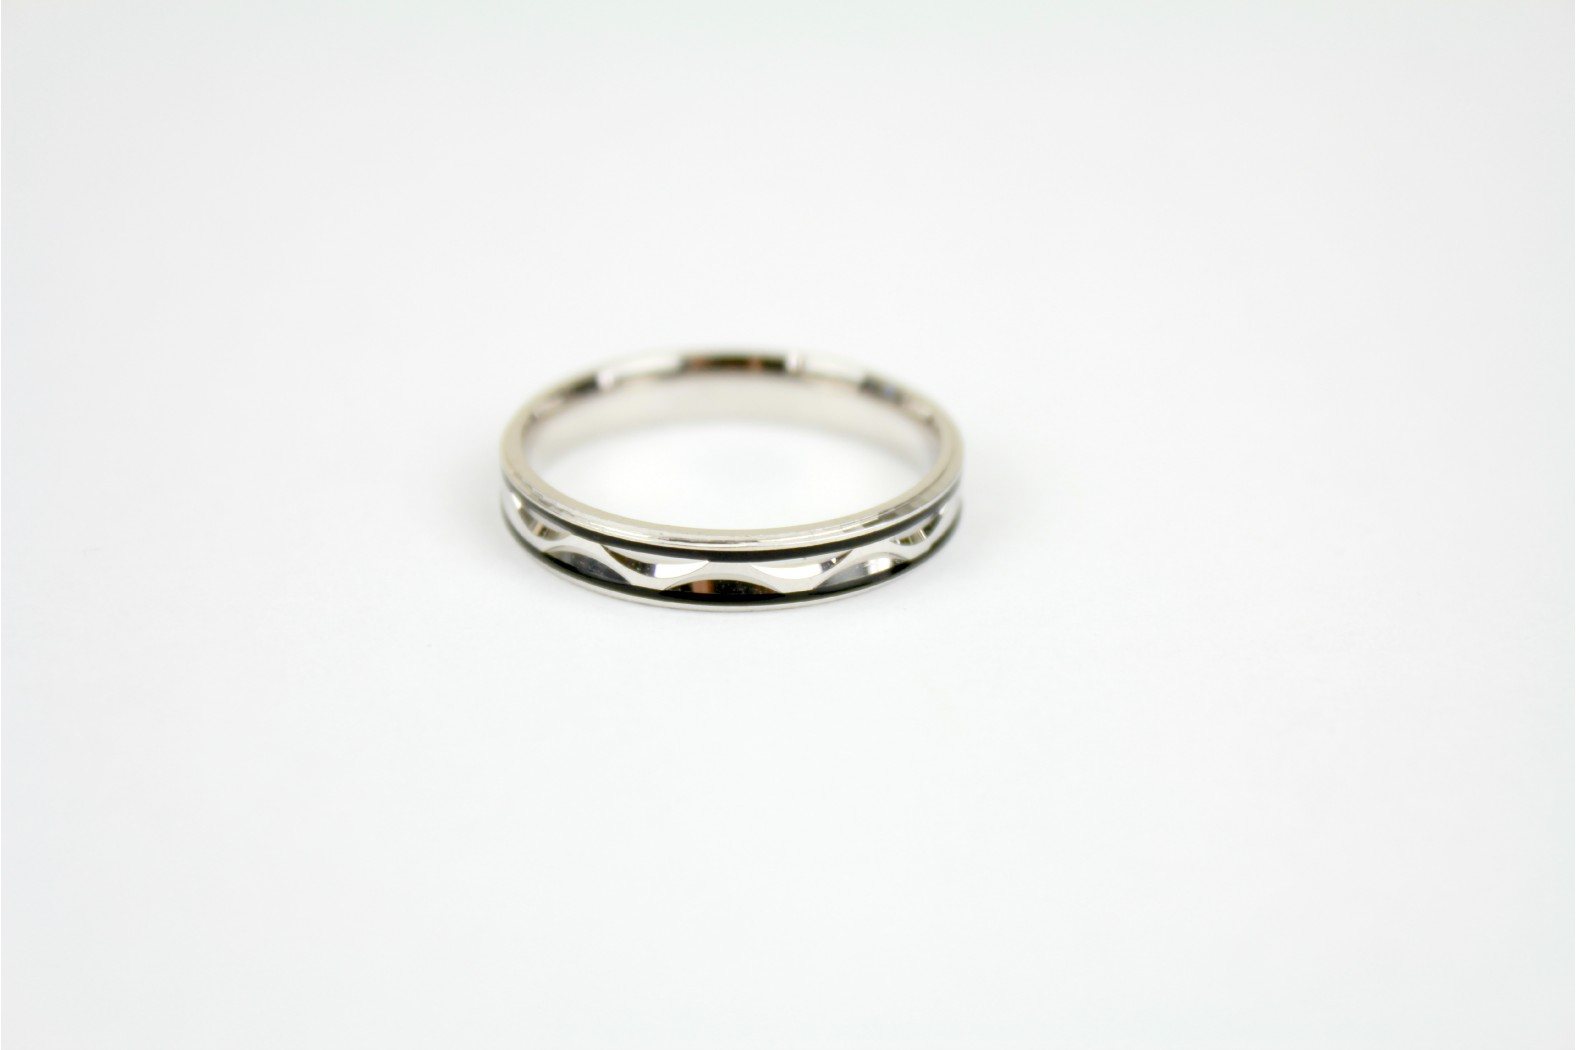 Slim polished silver wave band with parallel black lines etched size 10 or T